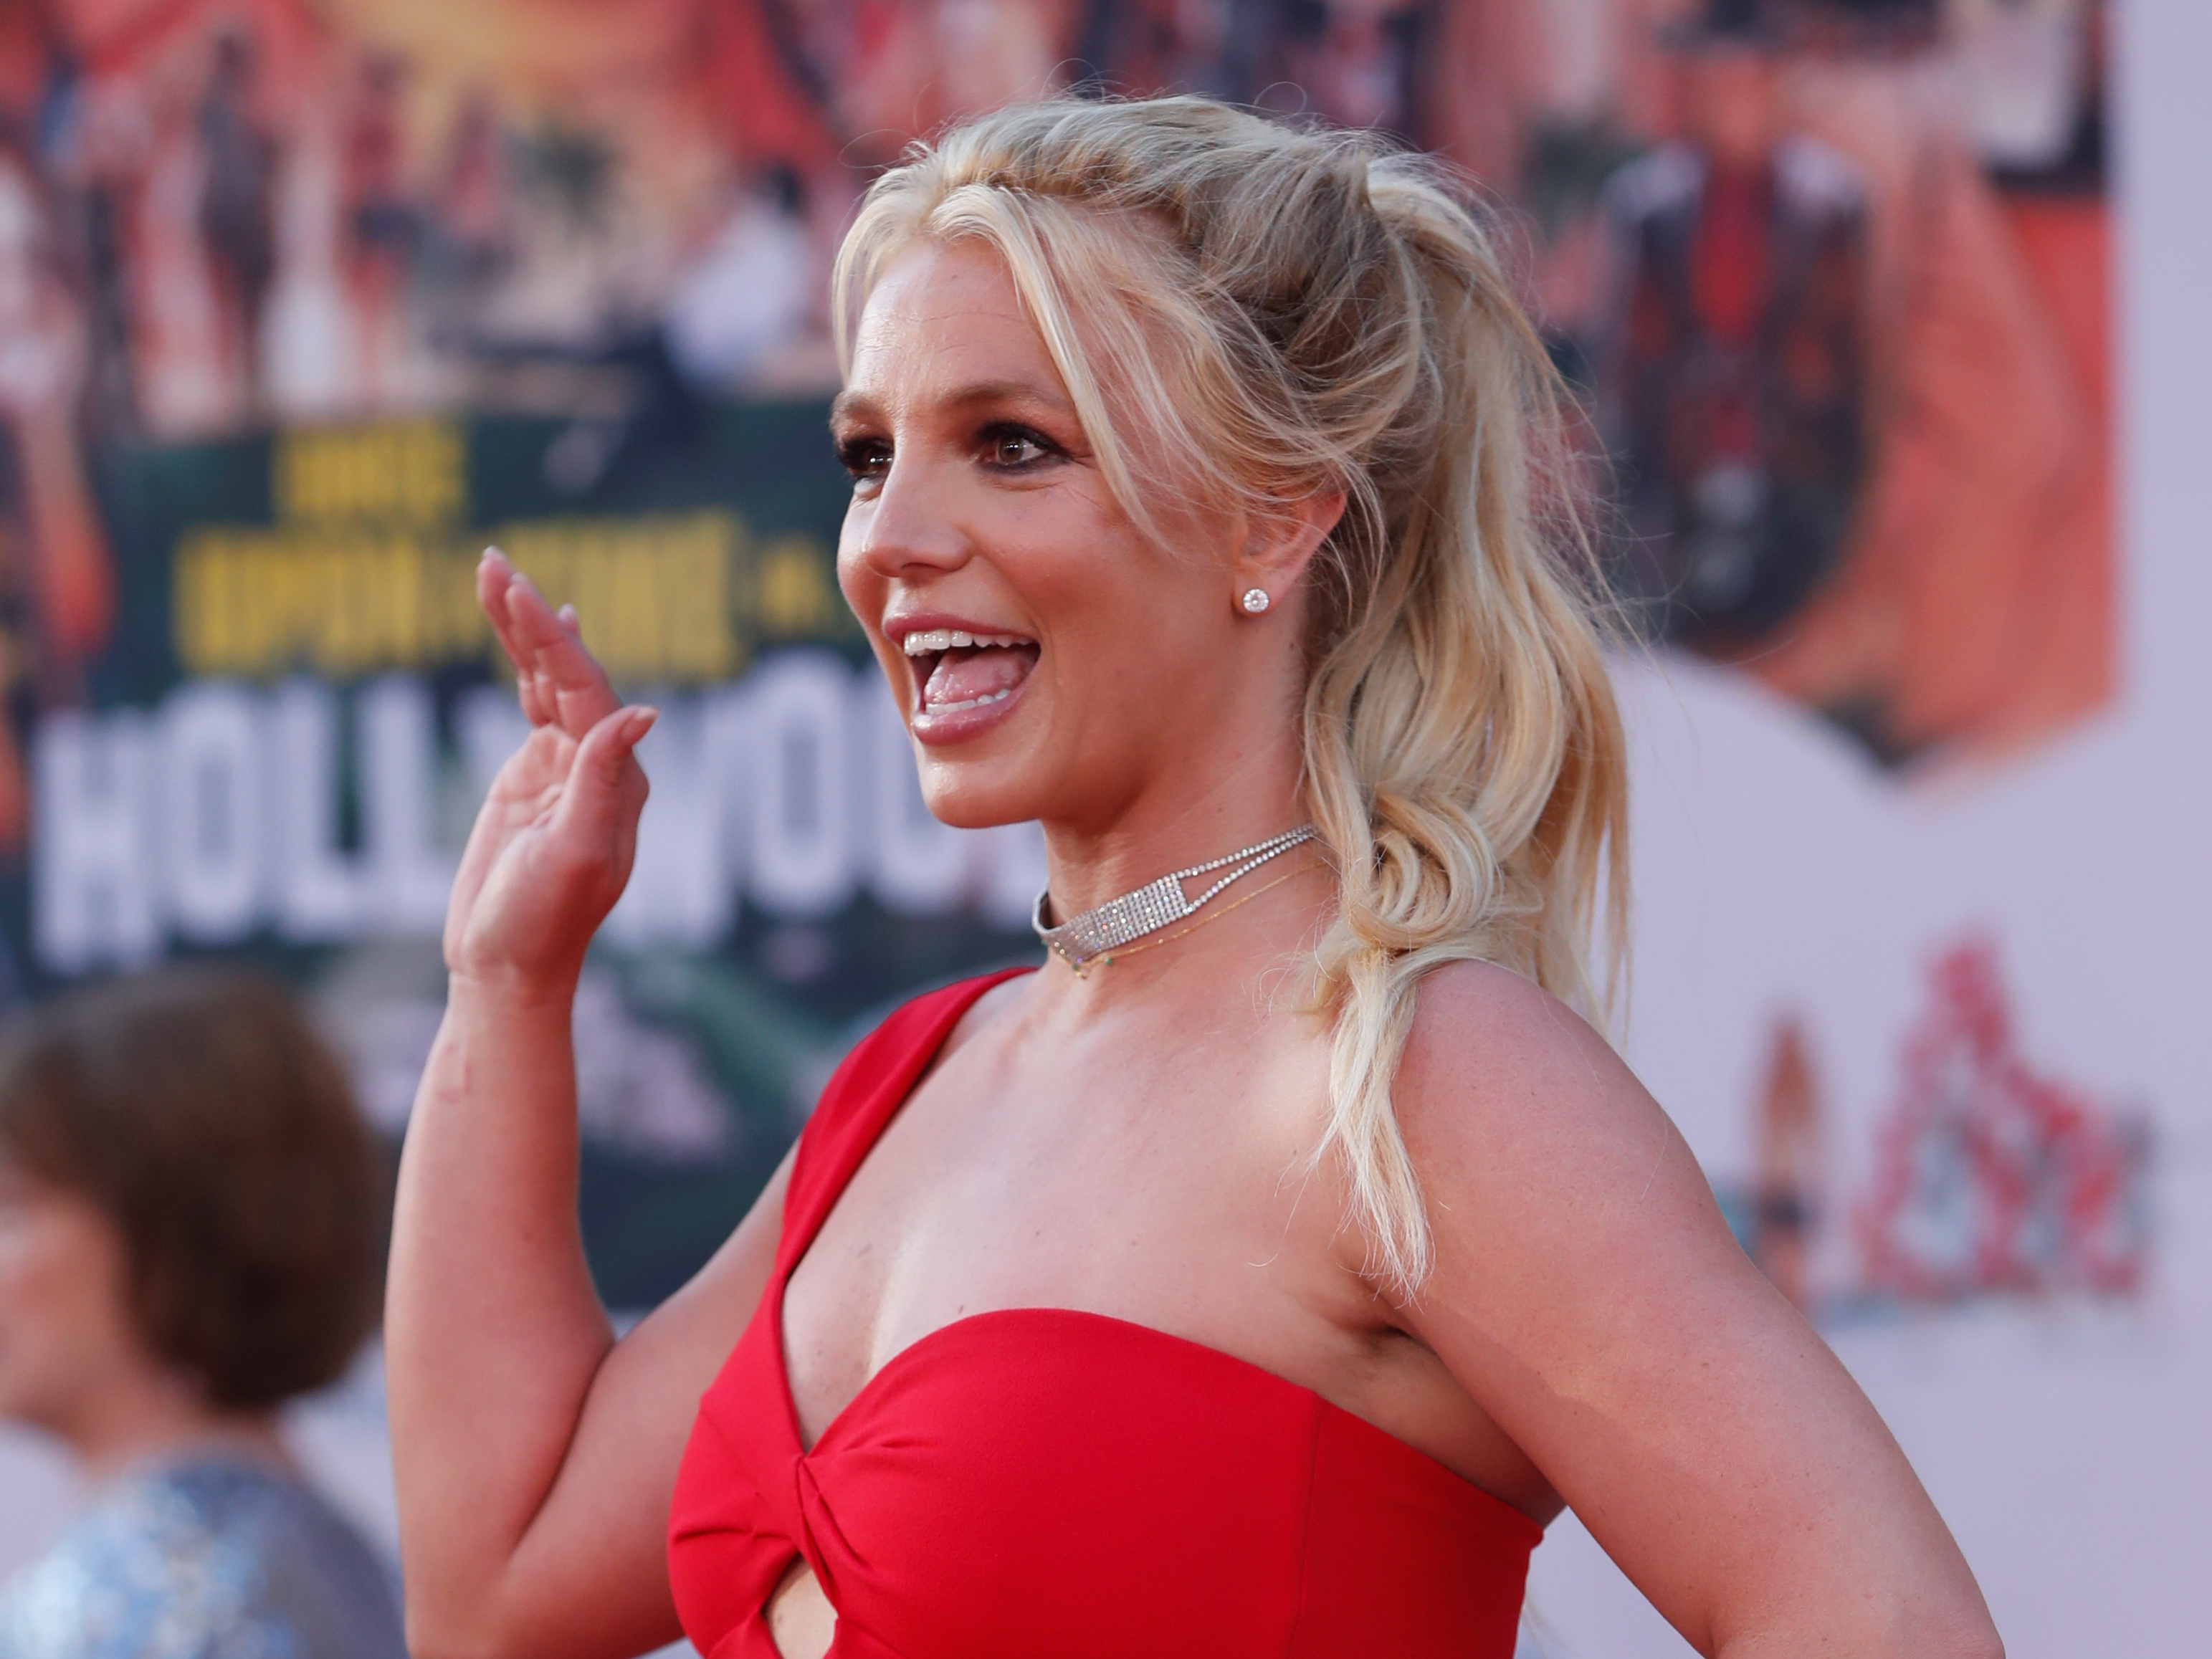 Britney Spears hasn't legally controlled her $59 million fortune in 12 years. That is how the pop icon makes and spends her money, from Goal browsing journeys to California mansions.